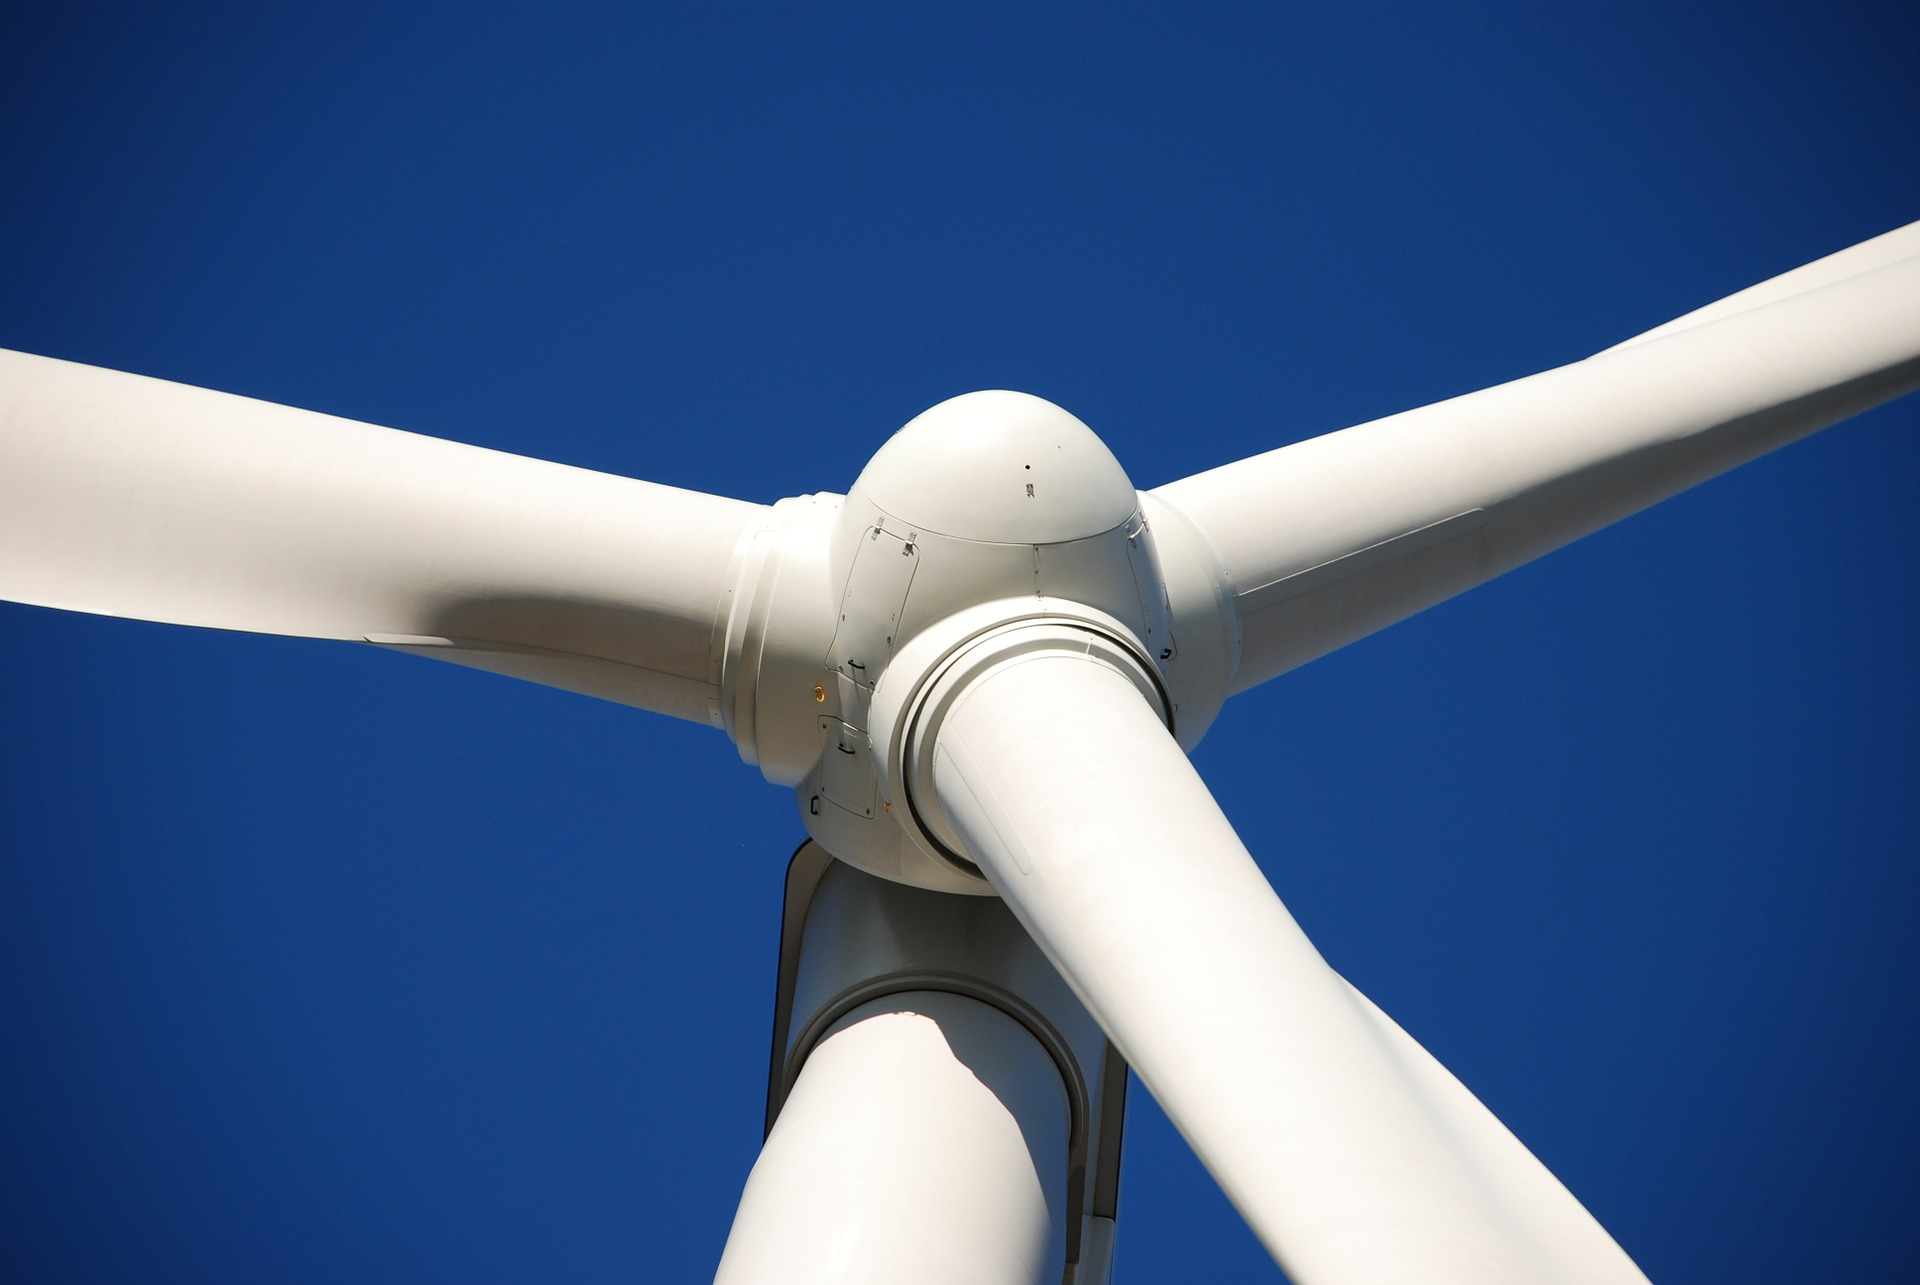 Wind turbine imaging  with drones is safer and more efficient than any alternative.